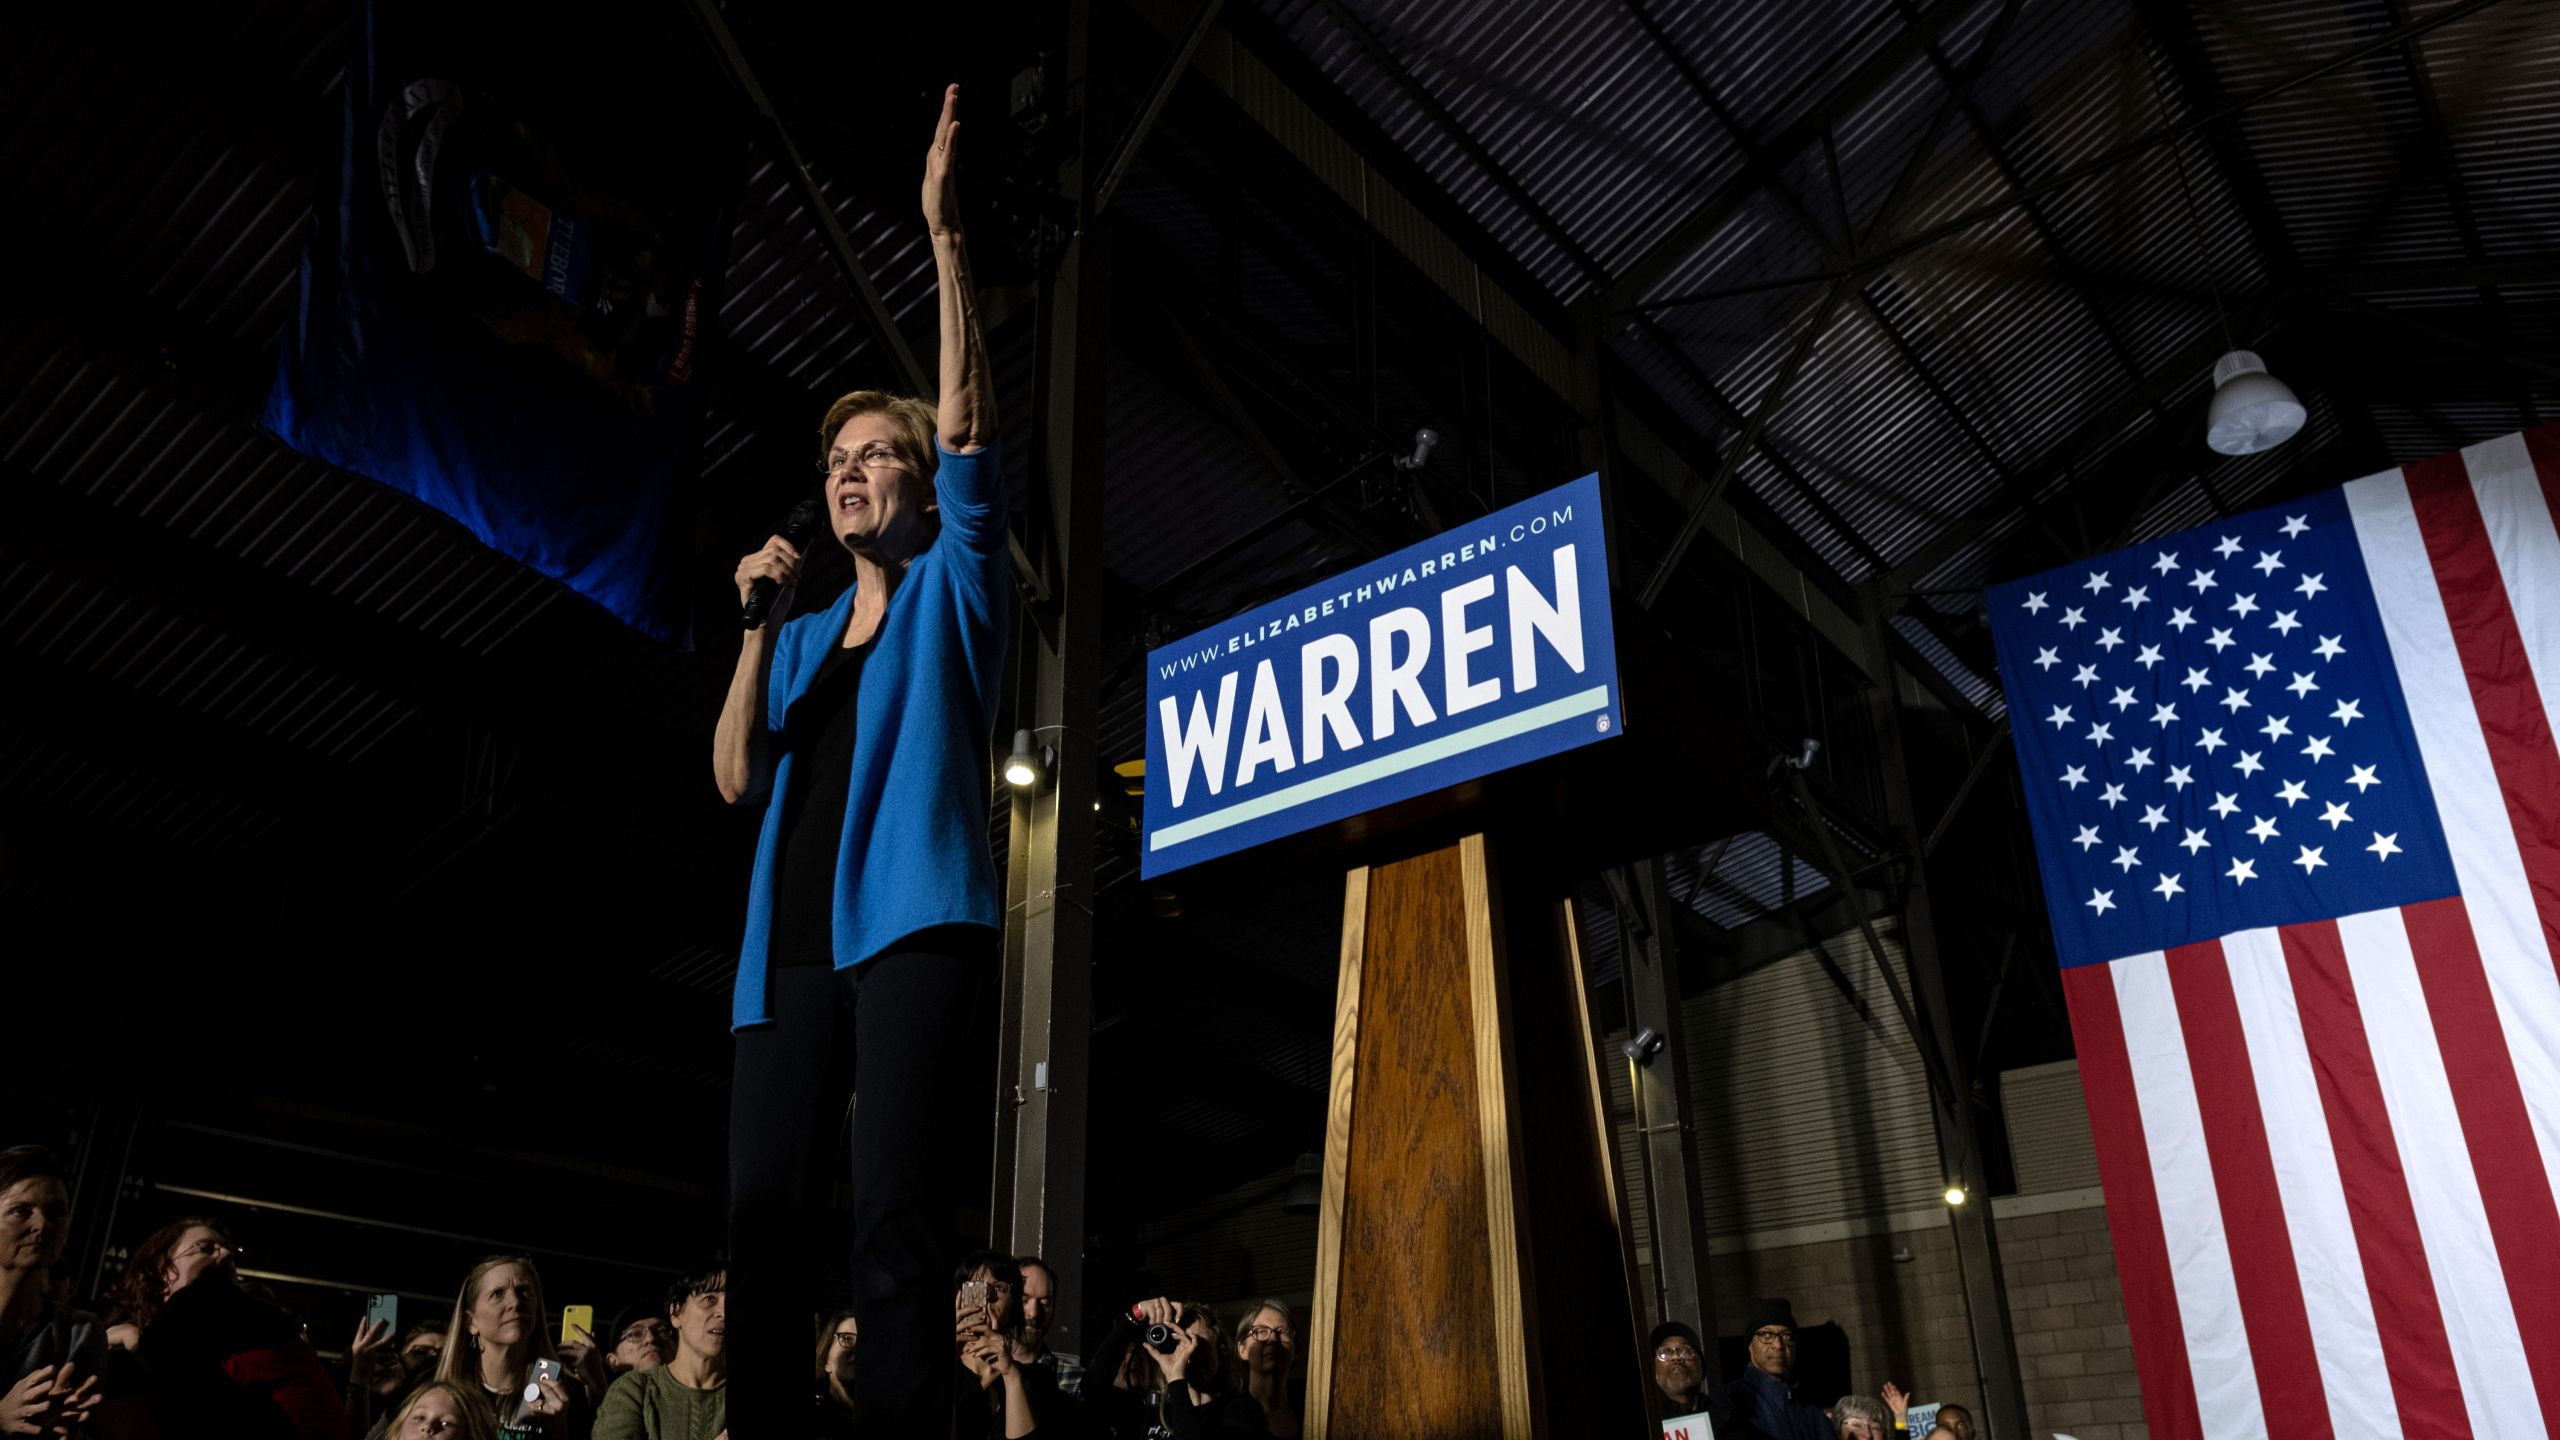 Sen. Elizabeth Warren gestures as she speaks at a rally March 3, 2020 in Detroit, Michigan at the Detroit Kitchen Connect on Super Tuesday. (SETH HERALD / APF / AFP)